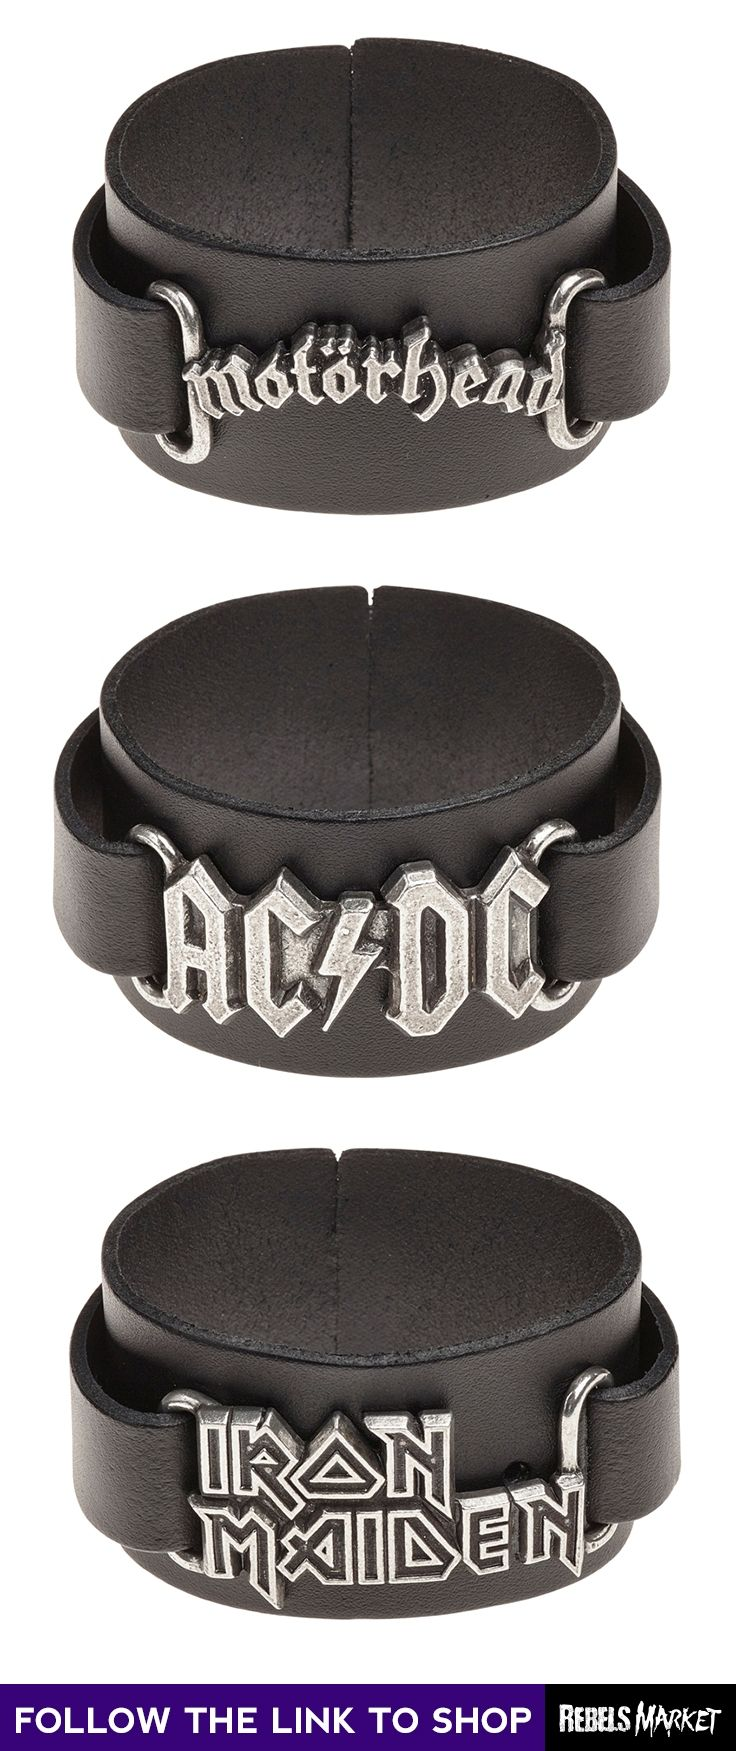 Shop gothic bands bracelets online at RebelsMarket.